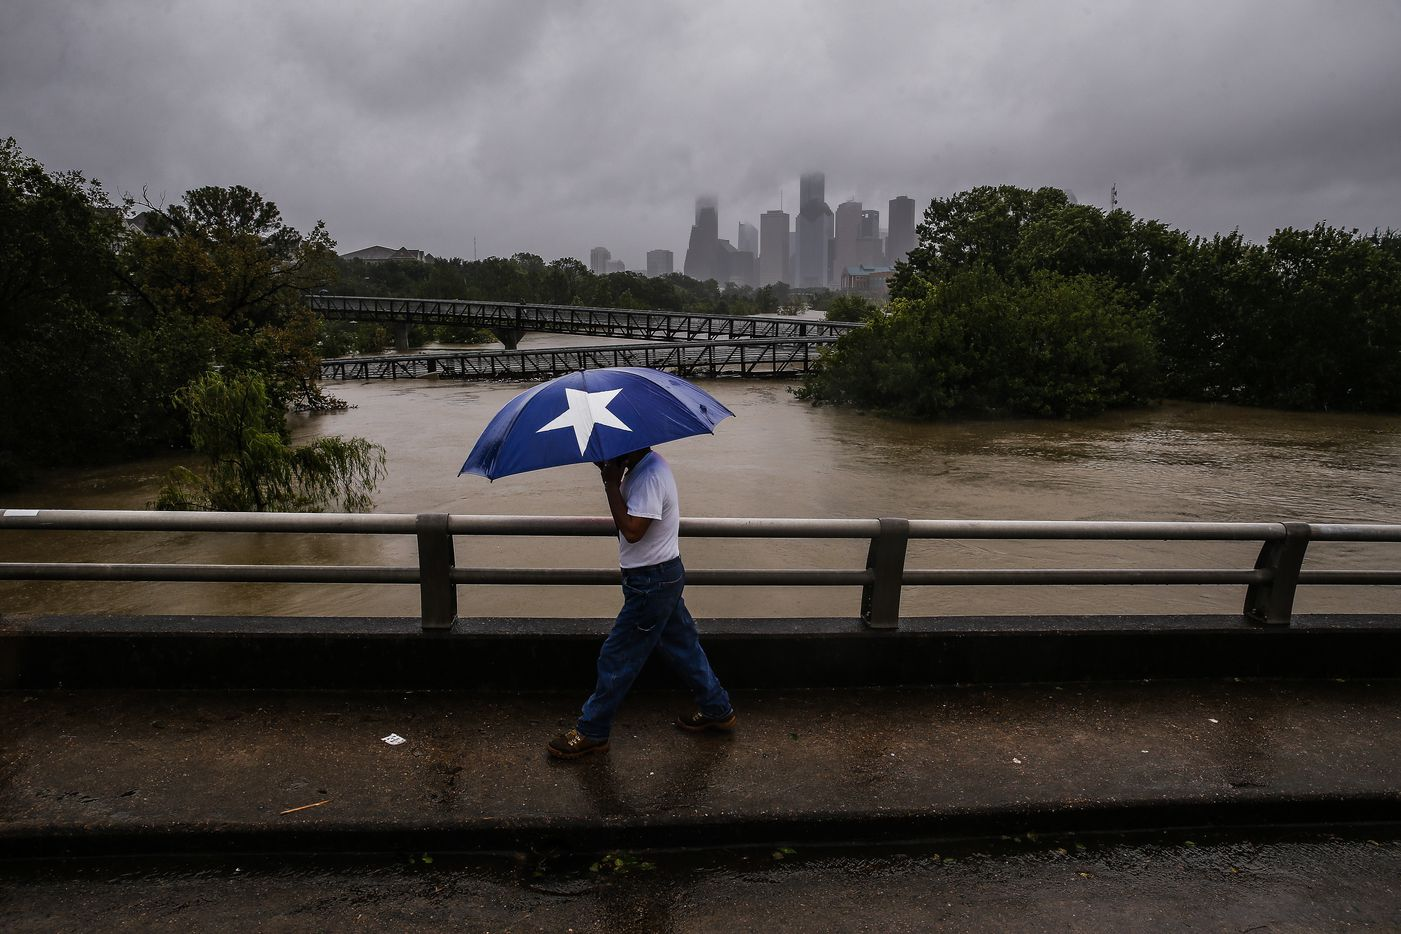 Armando Bustamante walks along the street over Buffalo Bayou as flood waters from Tropical Storm Harvey flow toward downtown Houston Tuesday, Aug. 29, 2017.  More than 17,000 people are seeking refuge in Texas shelters, the American Red Cross said. With rescues continuing, that number seemed certain to grow.